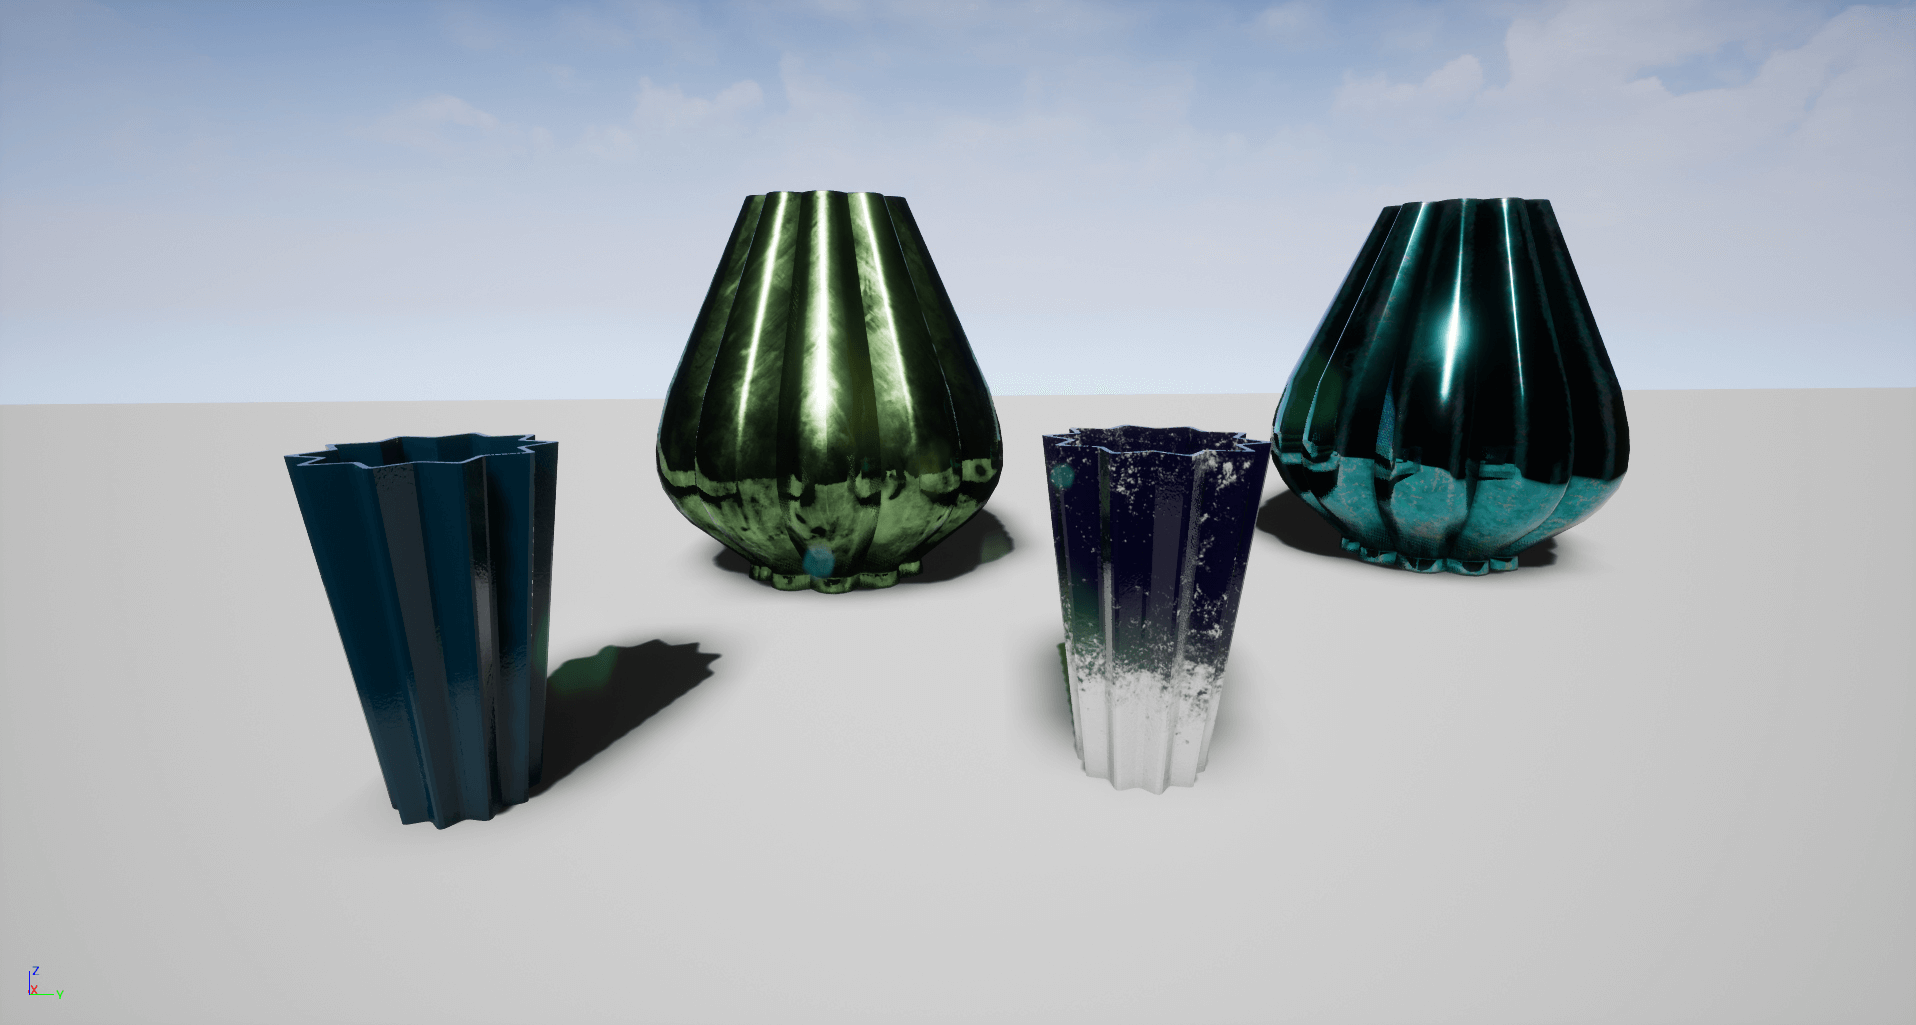 Decorative Flower Vase Set by 3x3Pixel in Props UE4 Marketplace